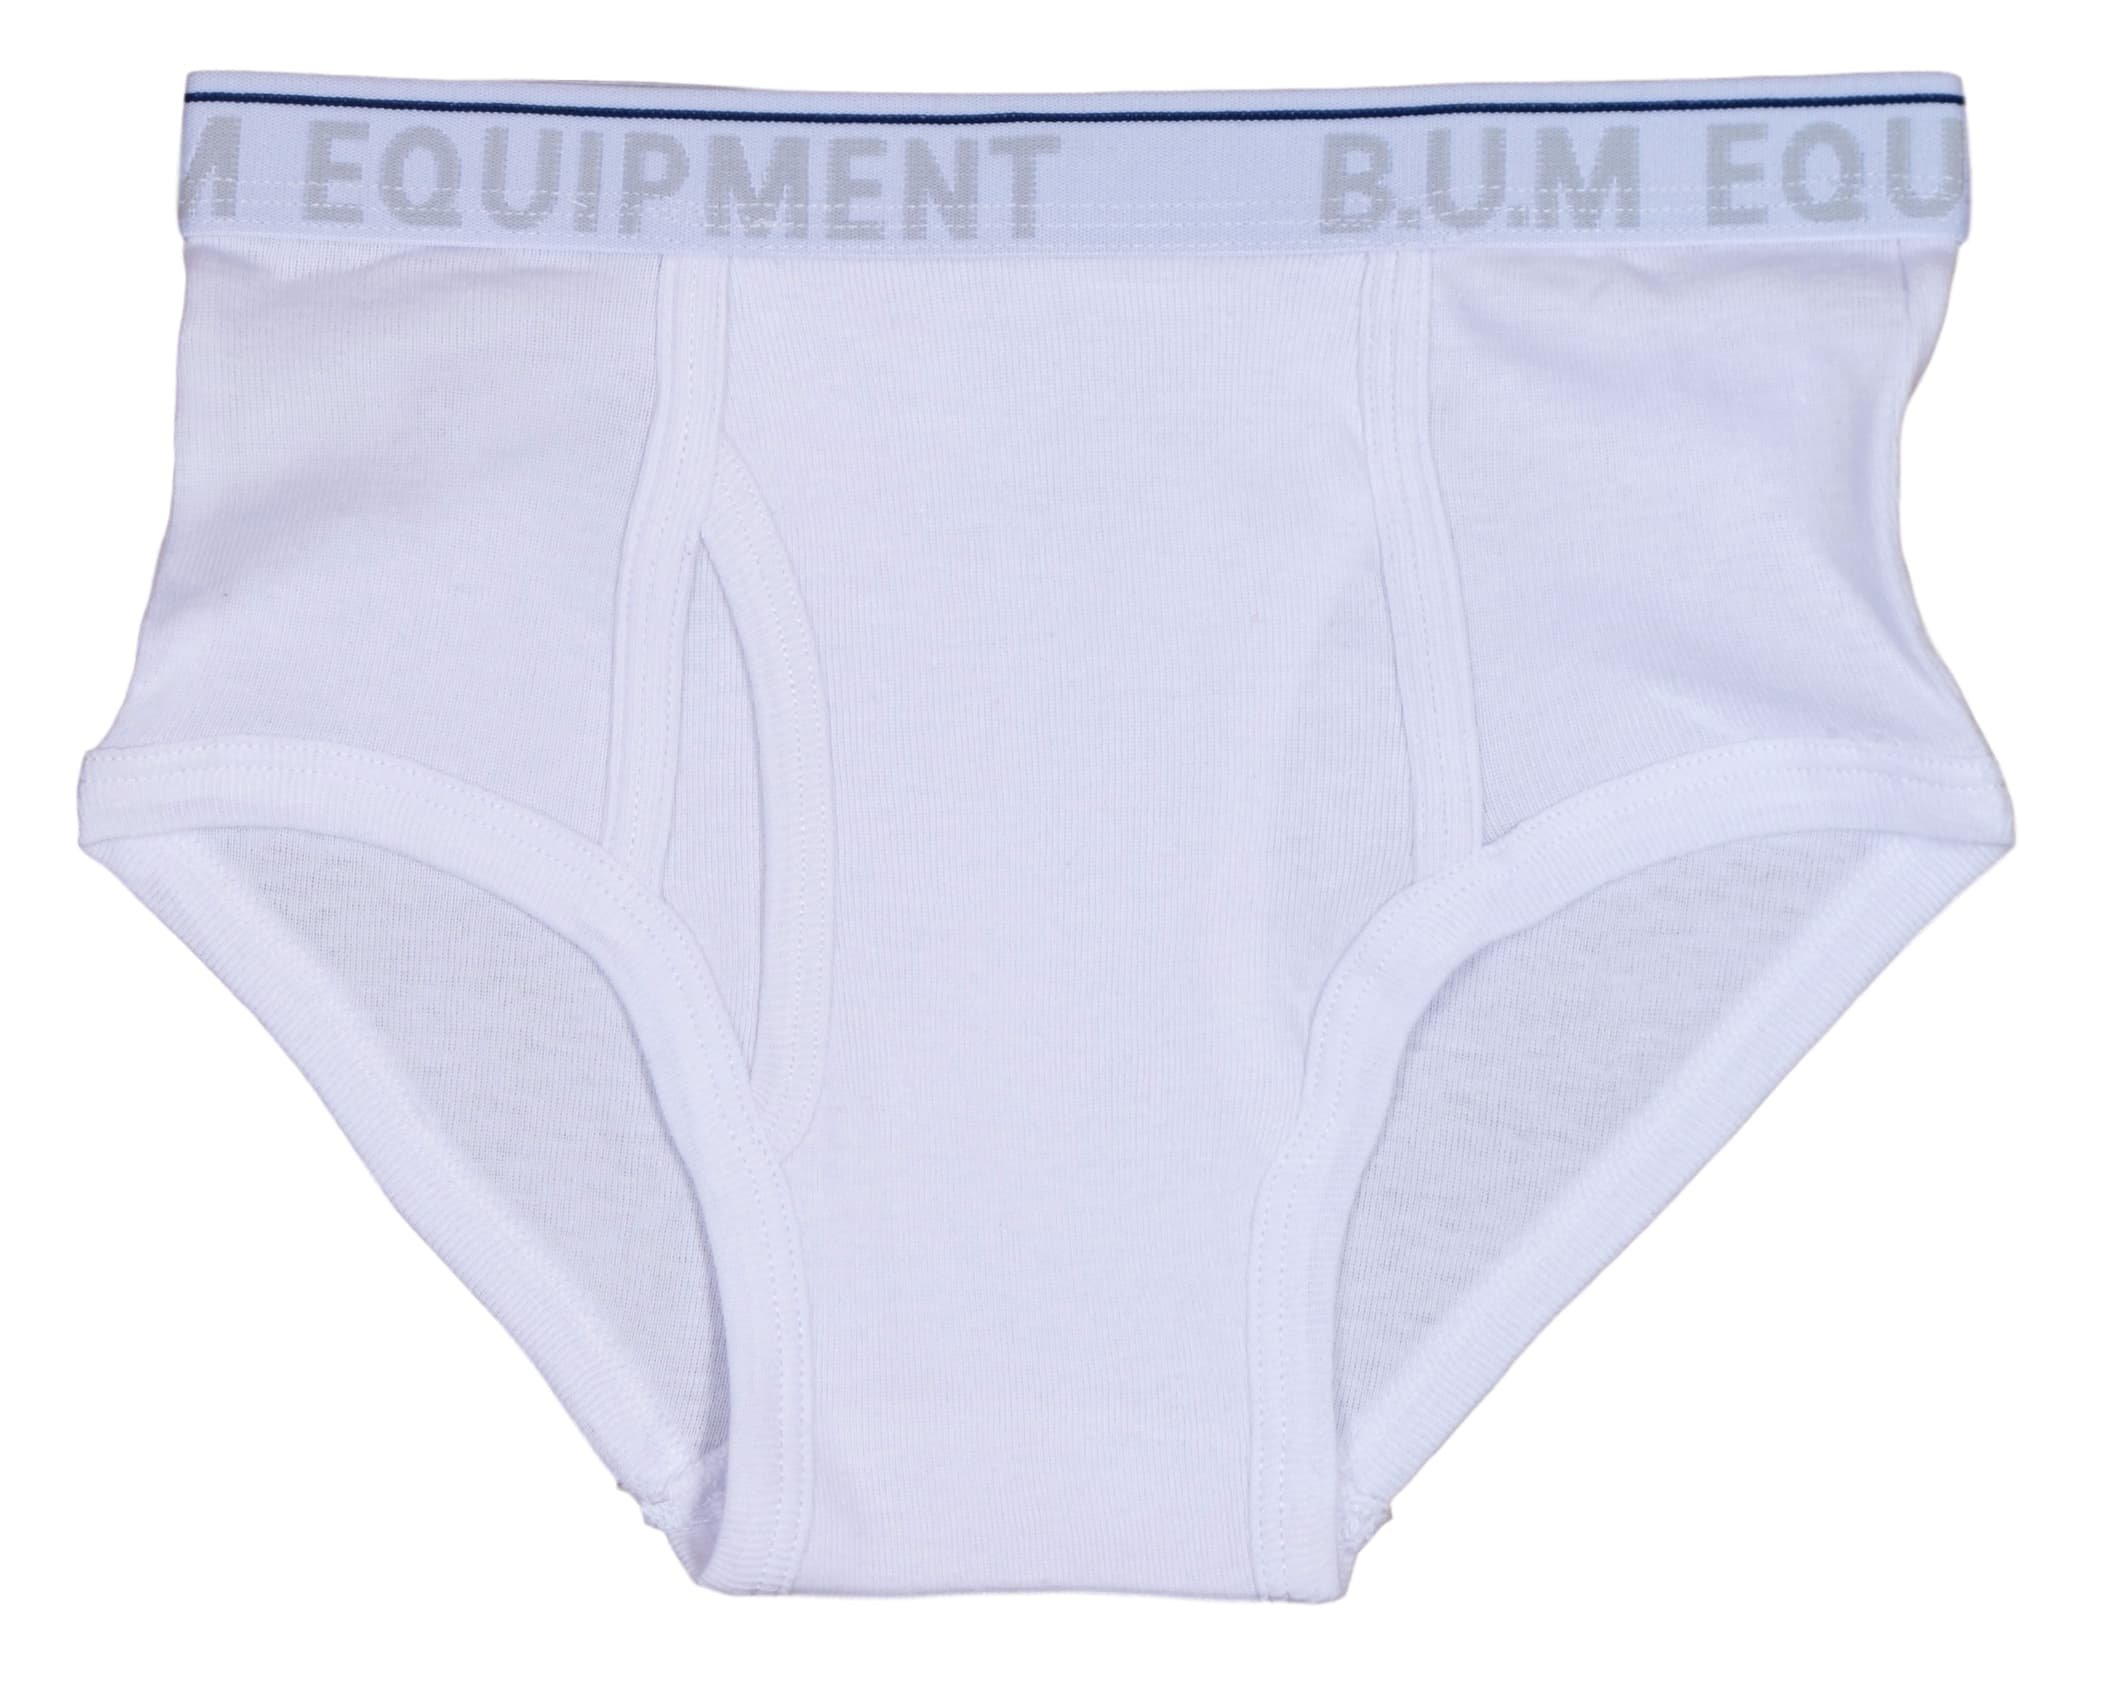 B.U.M. Equipment Boys 6 Pack Solid Underwear Briefs, Solids and Stripes, Navy/White/Grey, X-Small/4-5 by B.U.M. Equipment (Image #3)